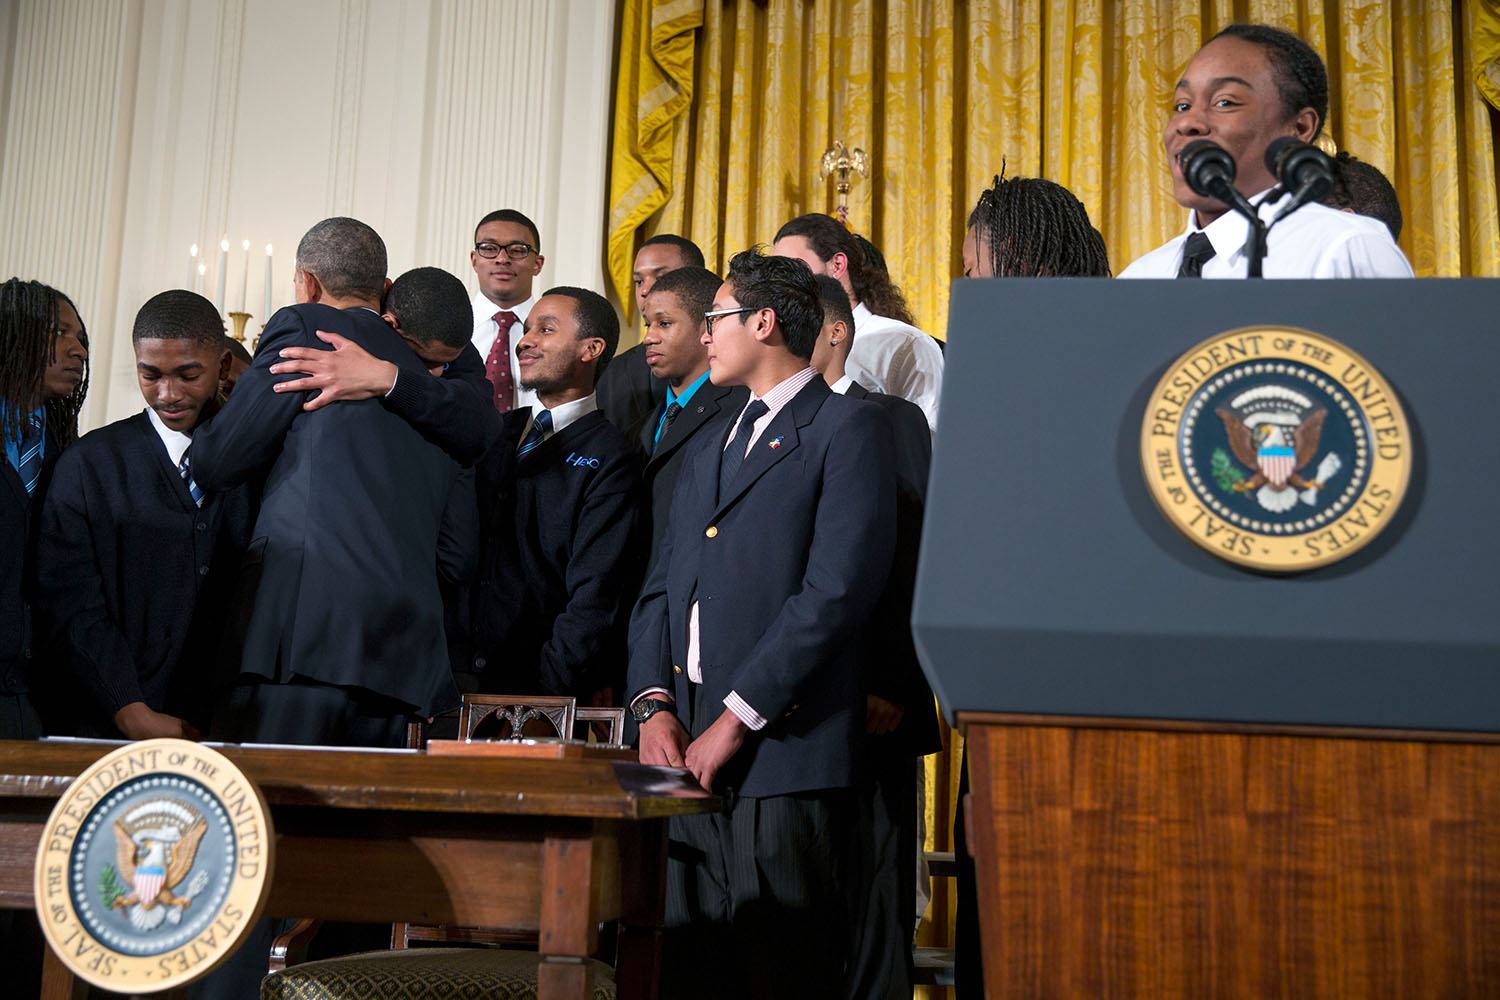 President Obama hugs a participant after signing a Presidential Memorandum establishing the My Brother's Keeper Task Force